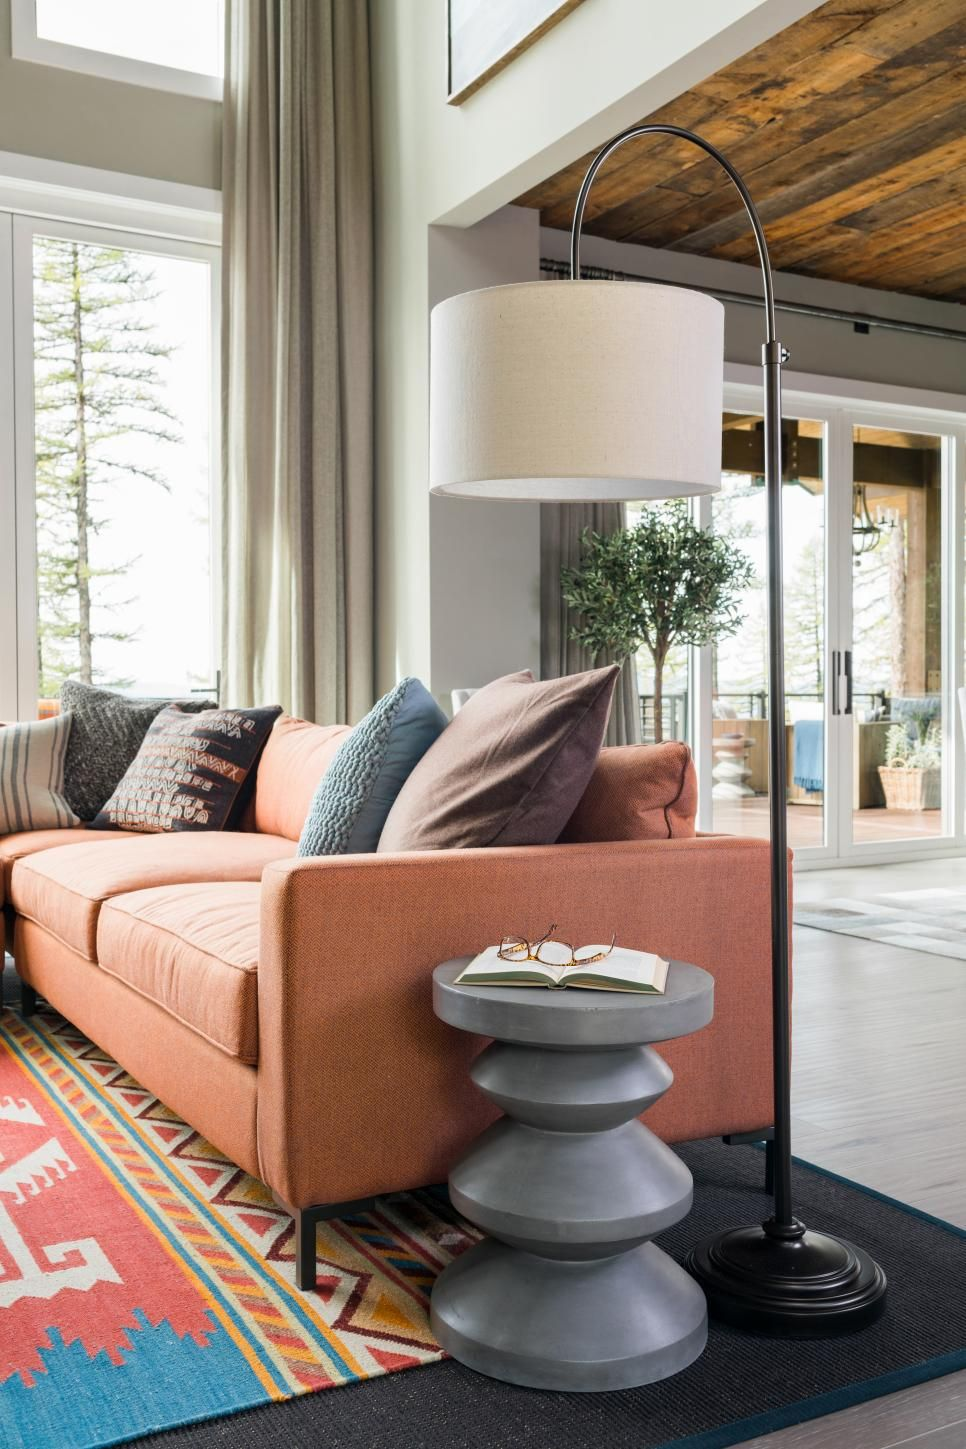 Hgtv Dream Home 2019 Great Room Pictures Hgtv Dream Home 2019